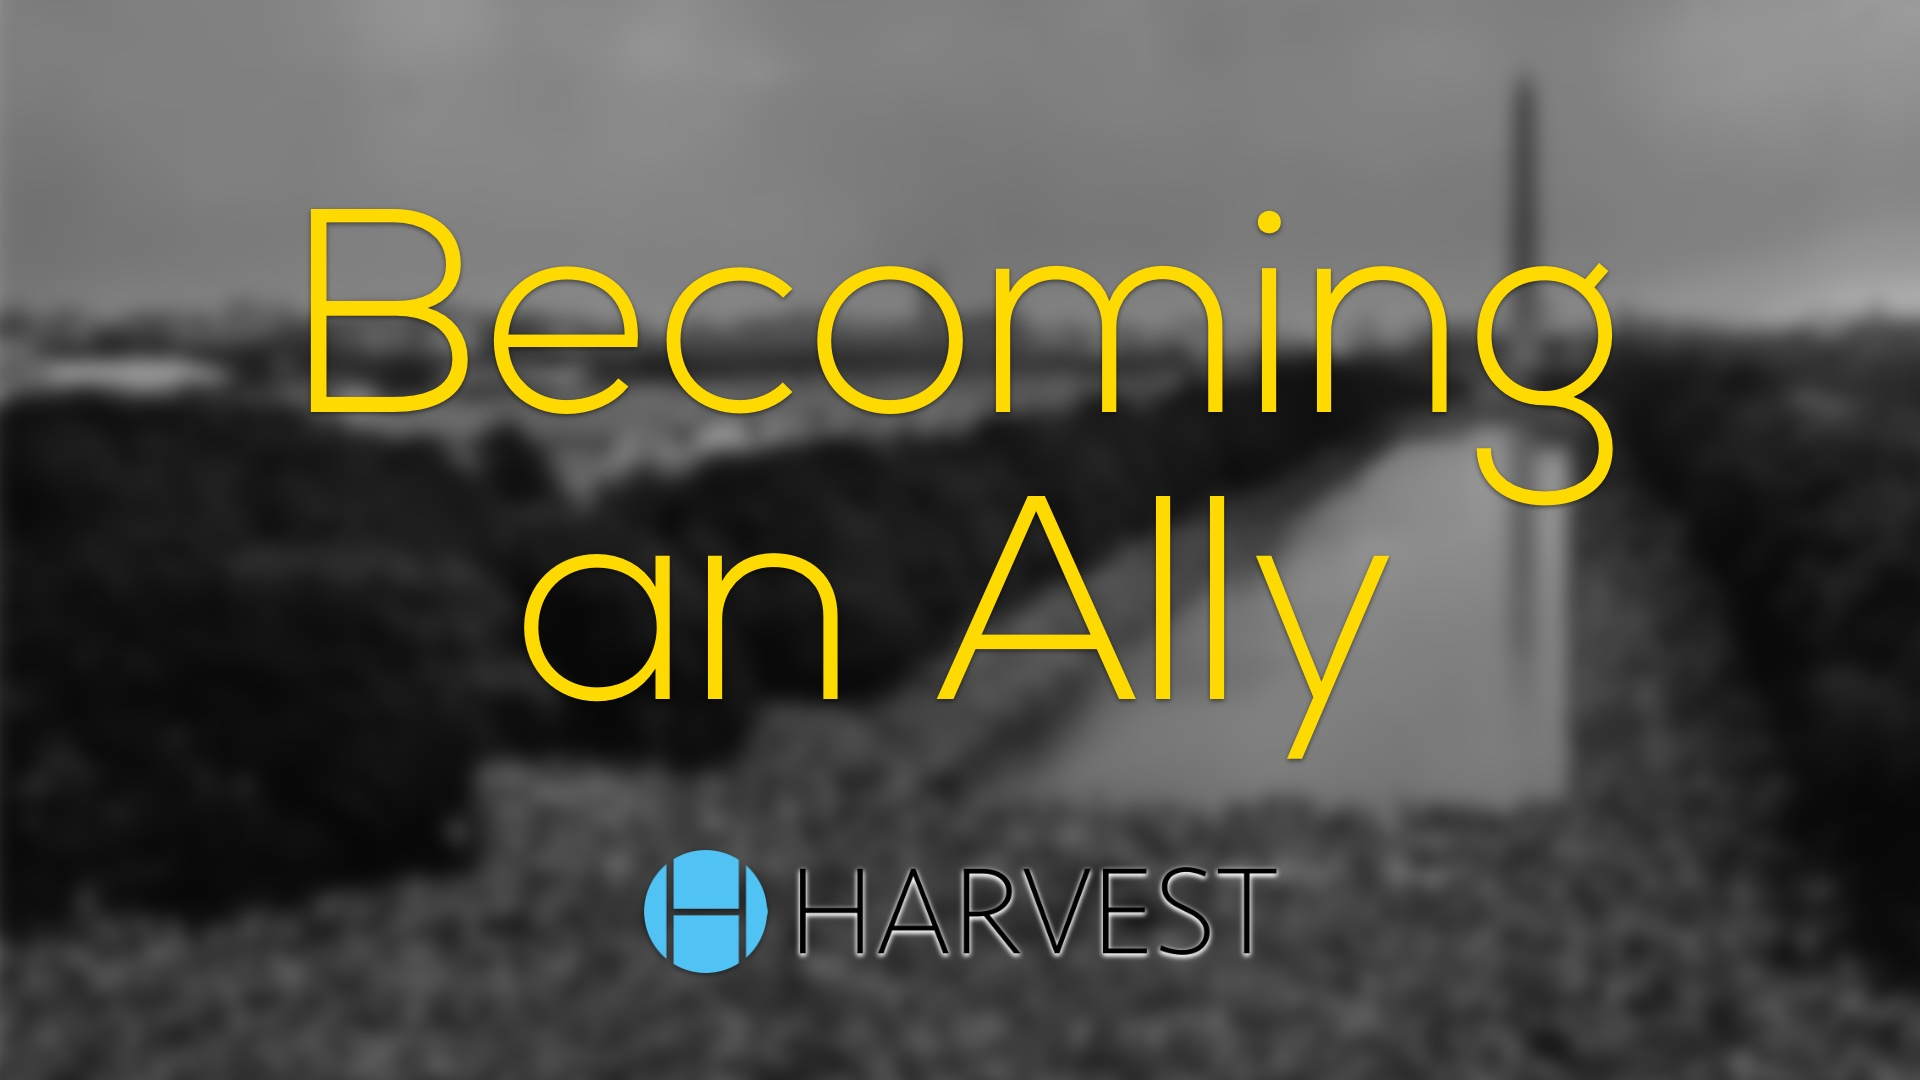 Becoming an Ally: What To Do When Your Heart is Breaking